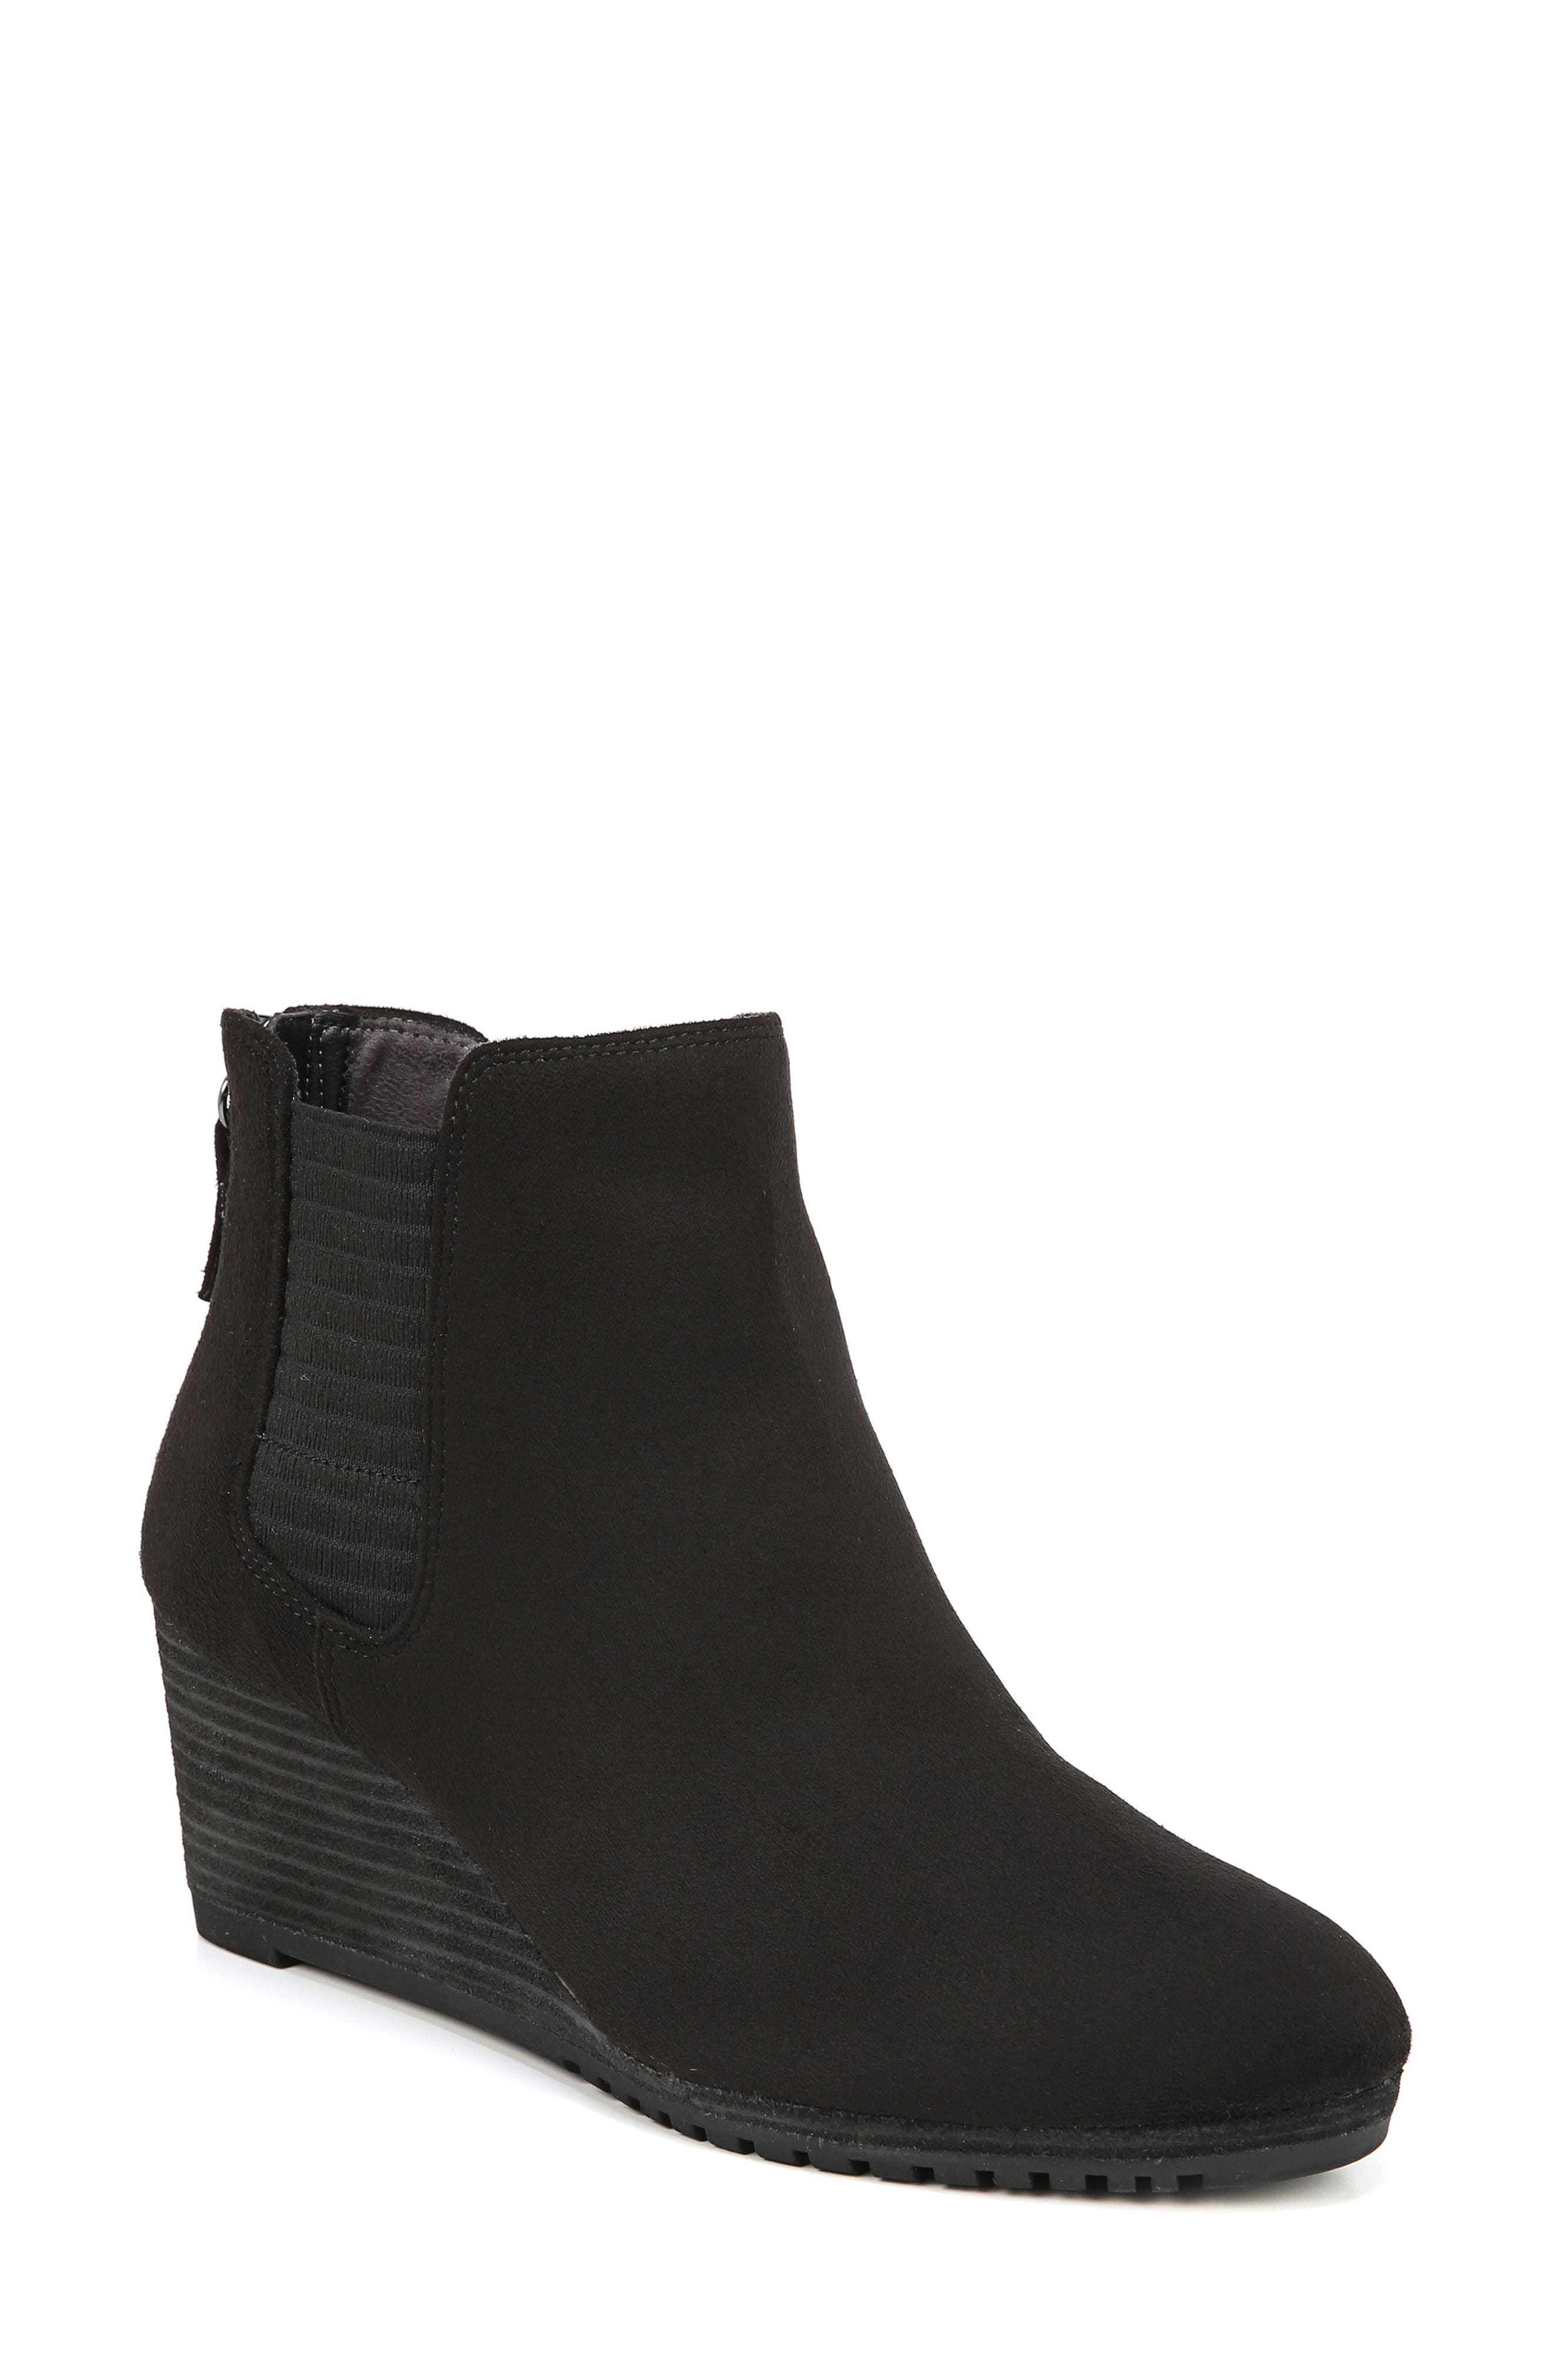 DR. SCHOLL'S Critic Wedge Chelsea Bootie, Main, color, 001